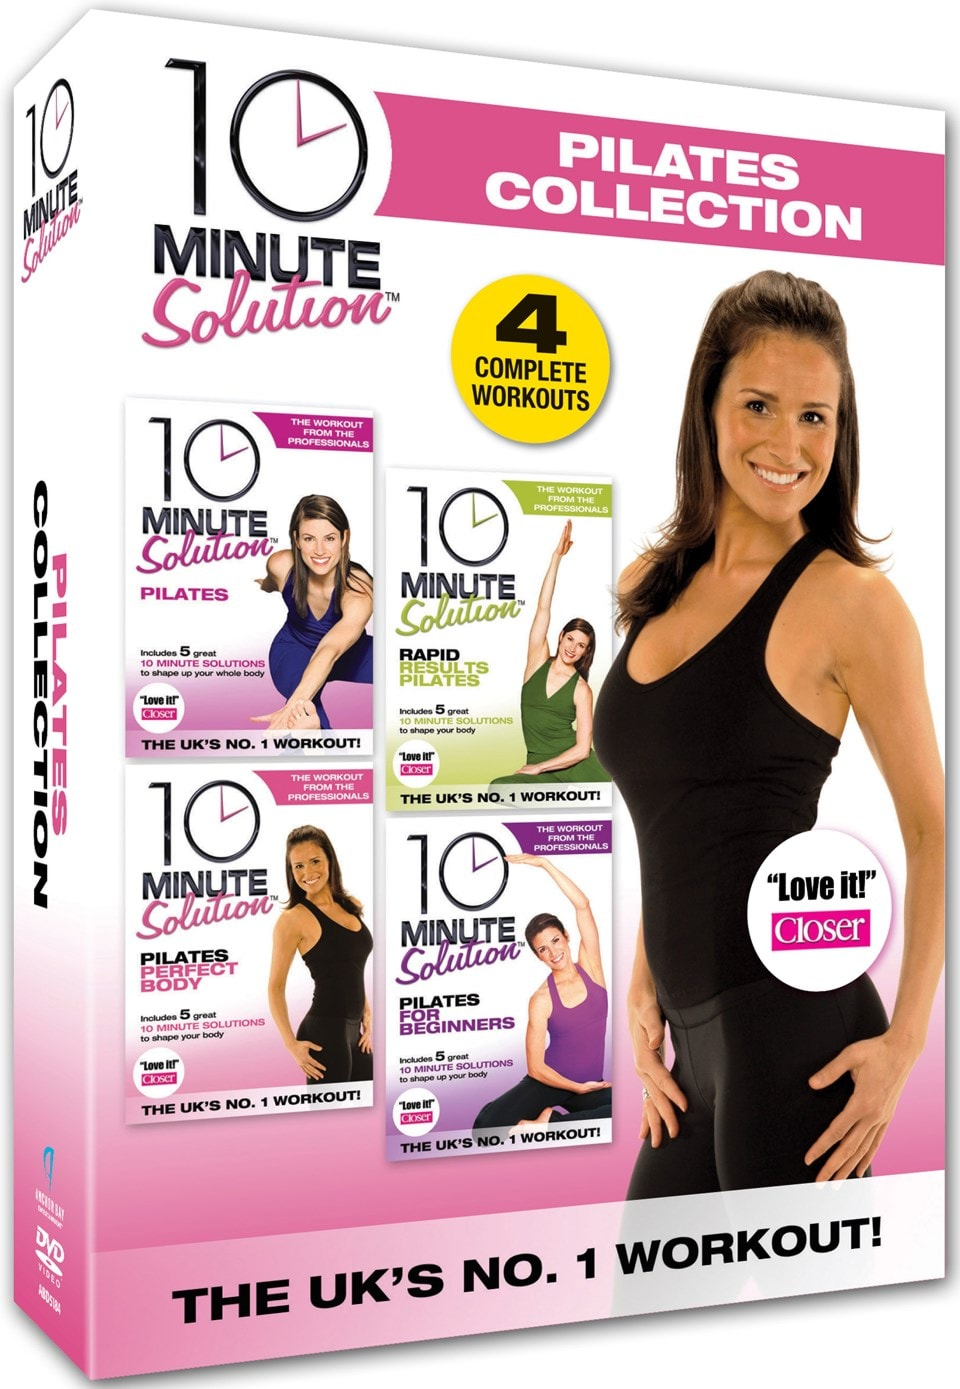 10 Minute Solution: The Pilates Collection - 2